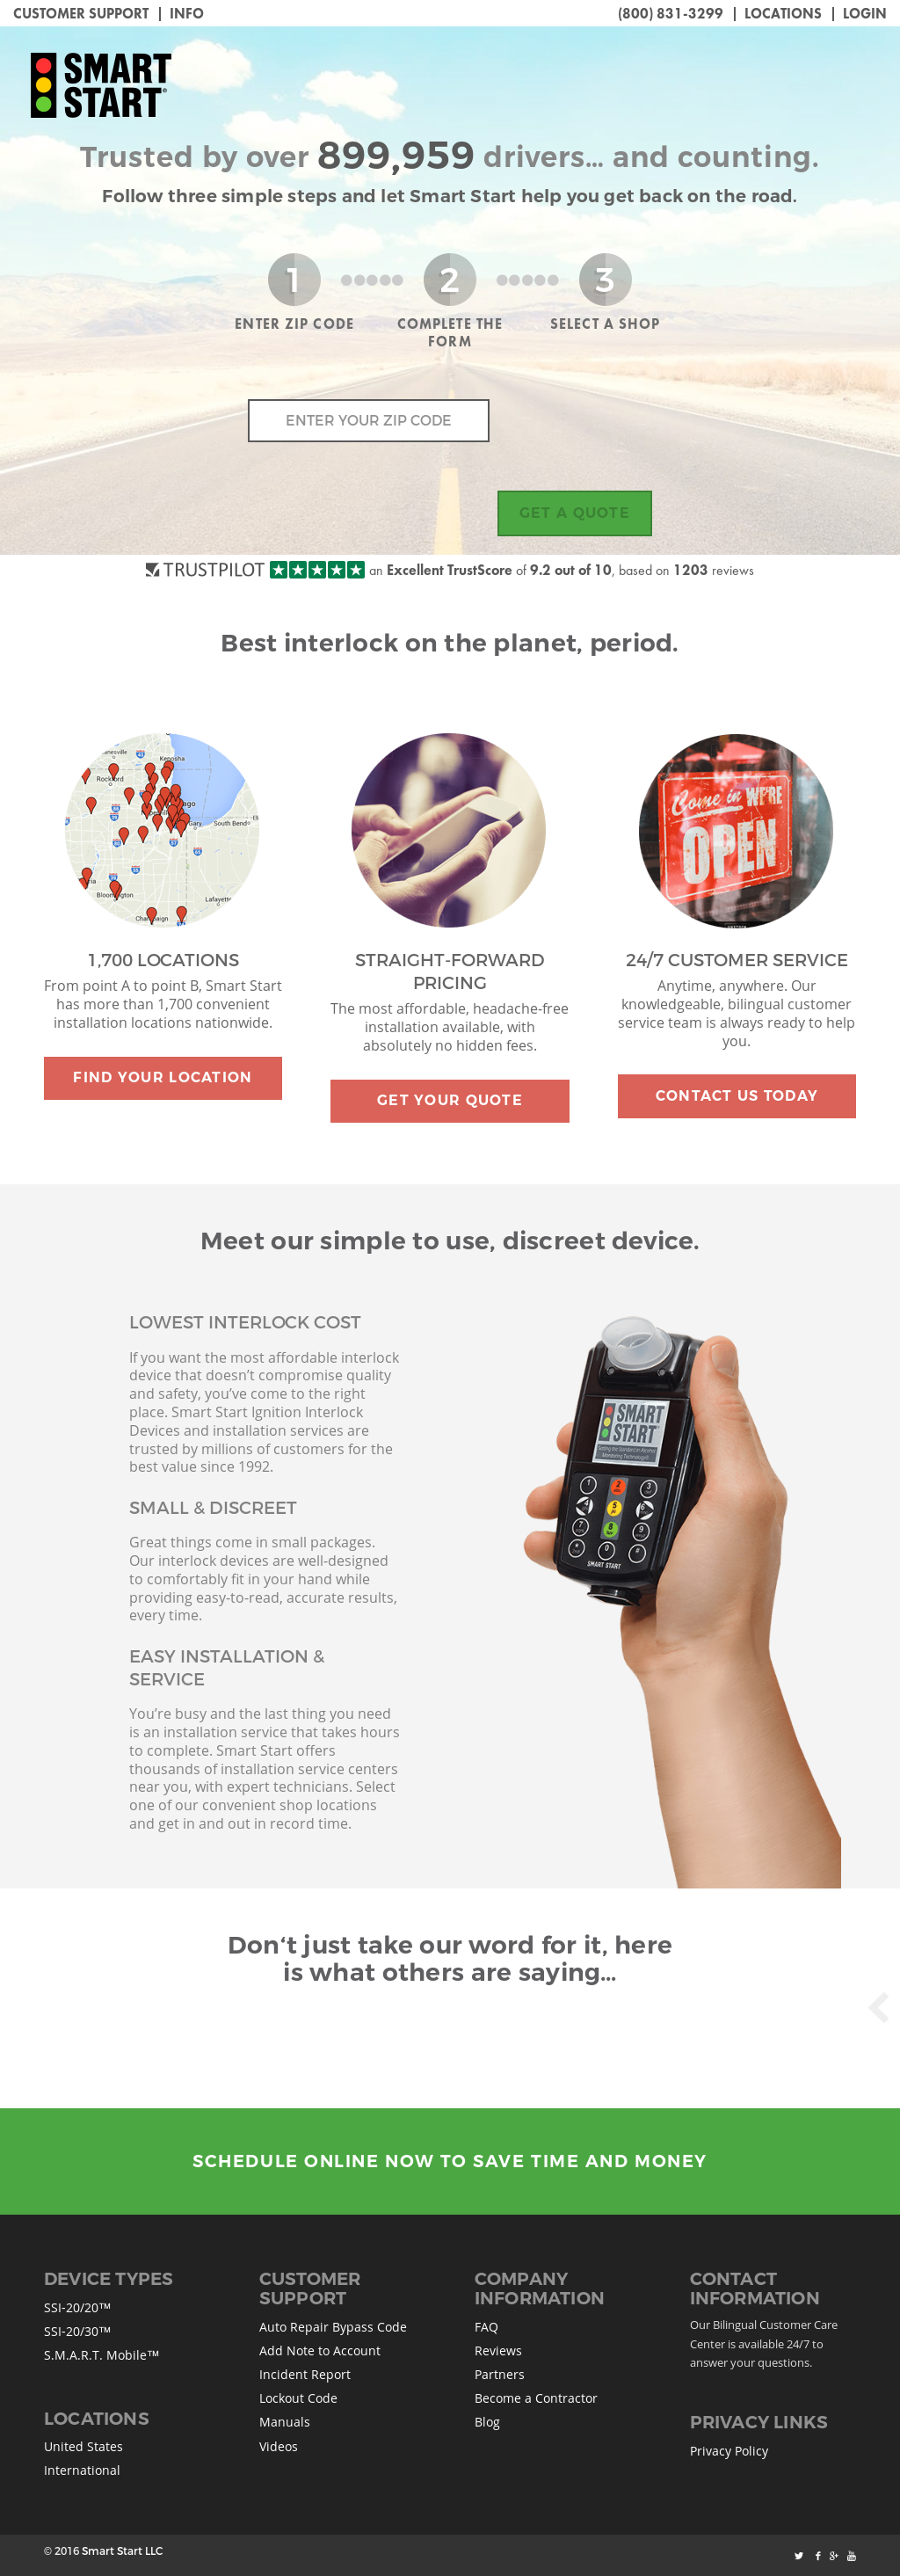 Smart Start Competitors, Revenue and Employees - Owler Company Profile